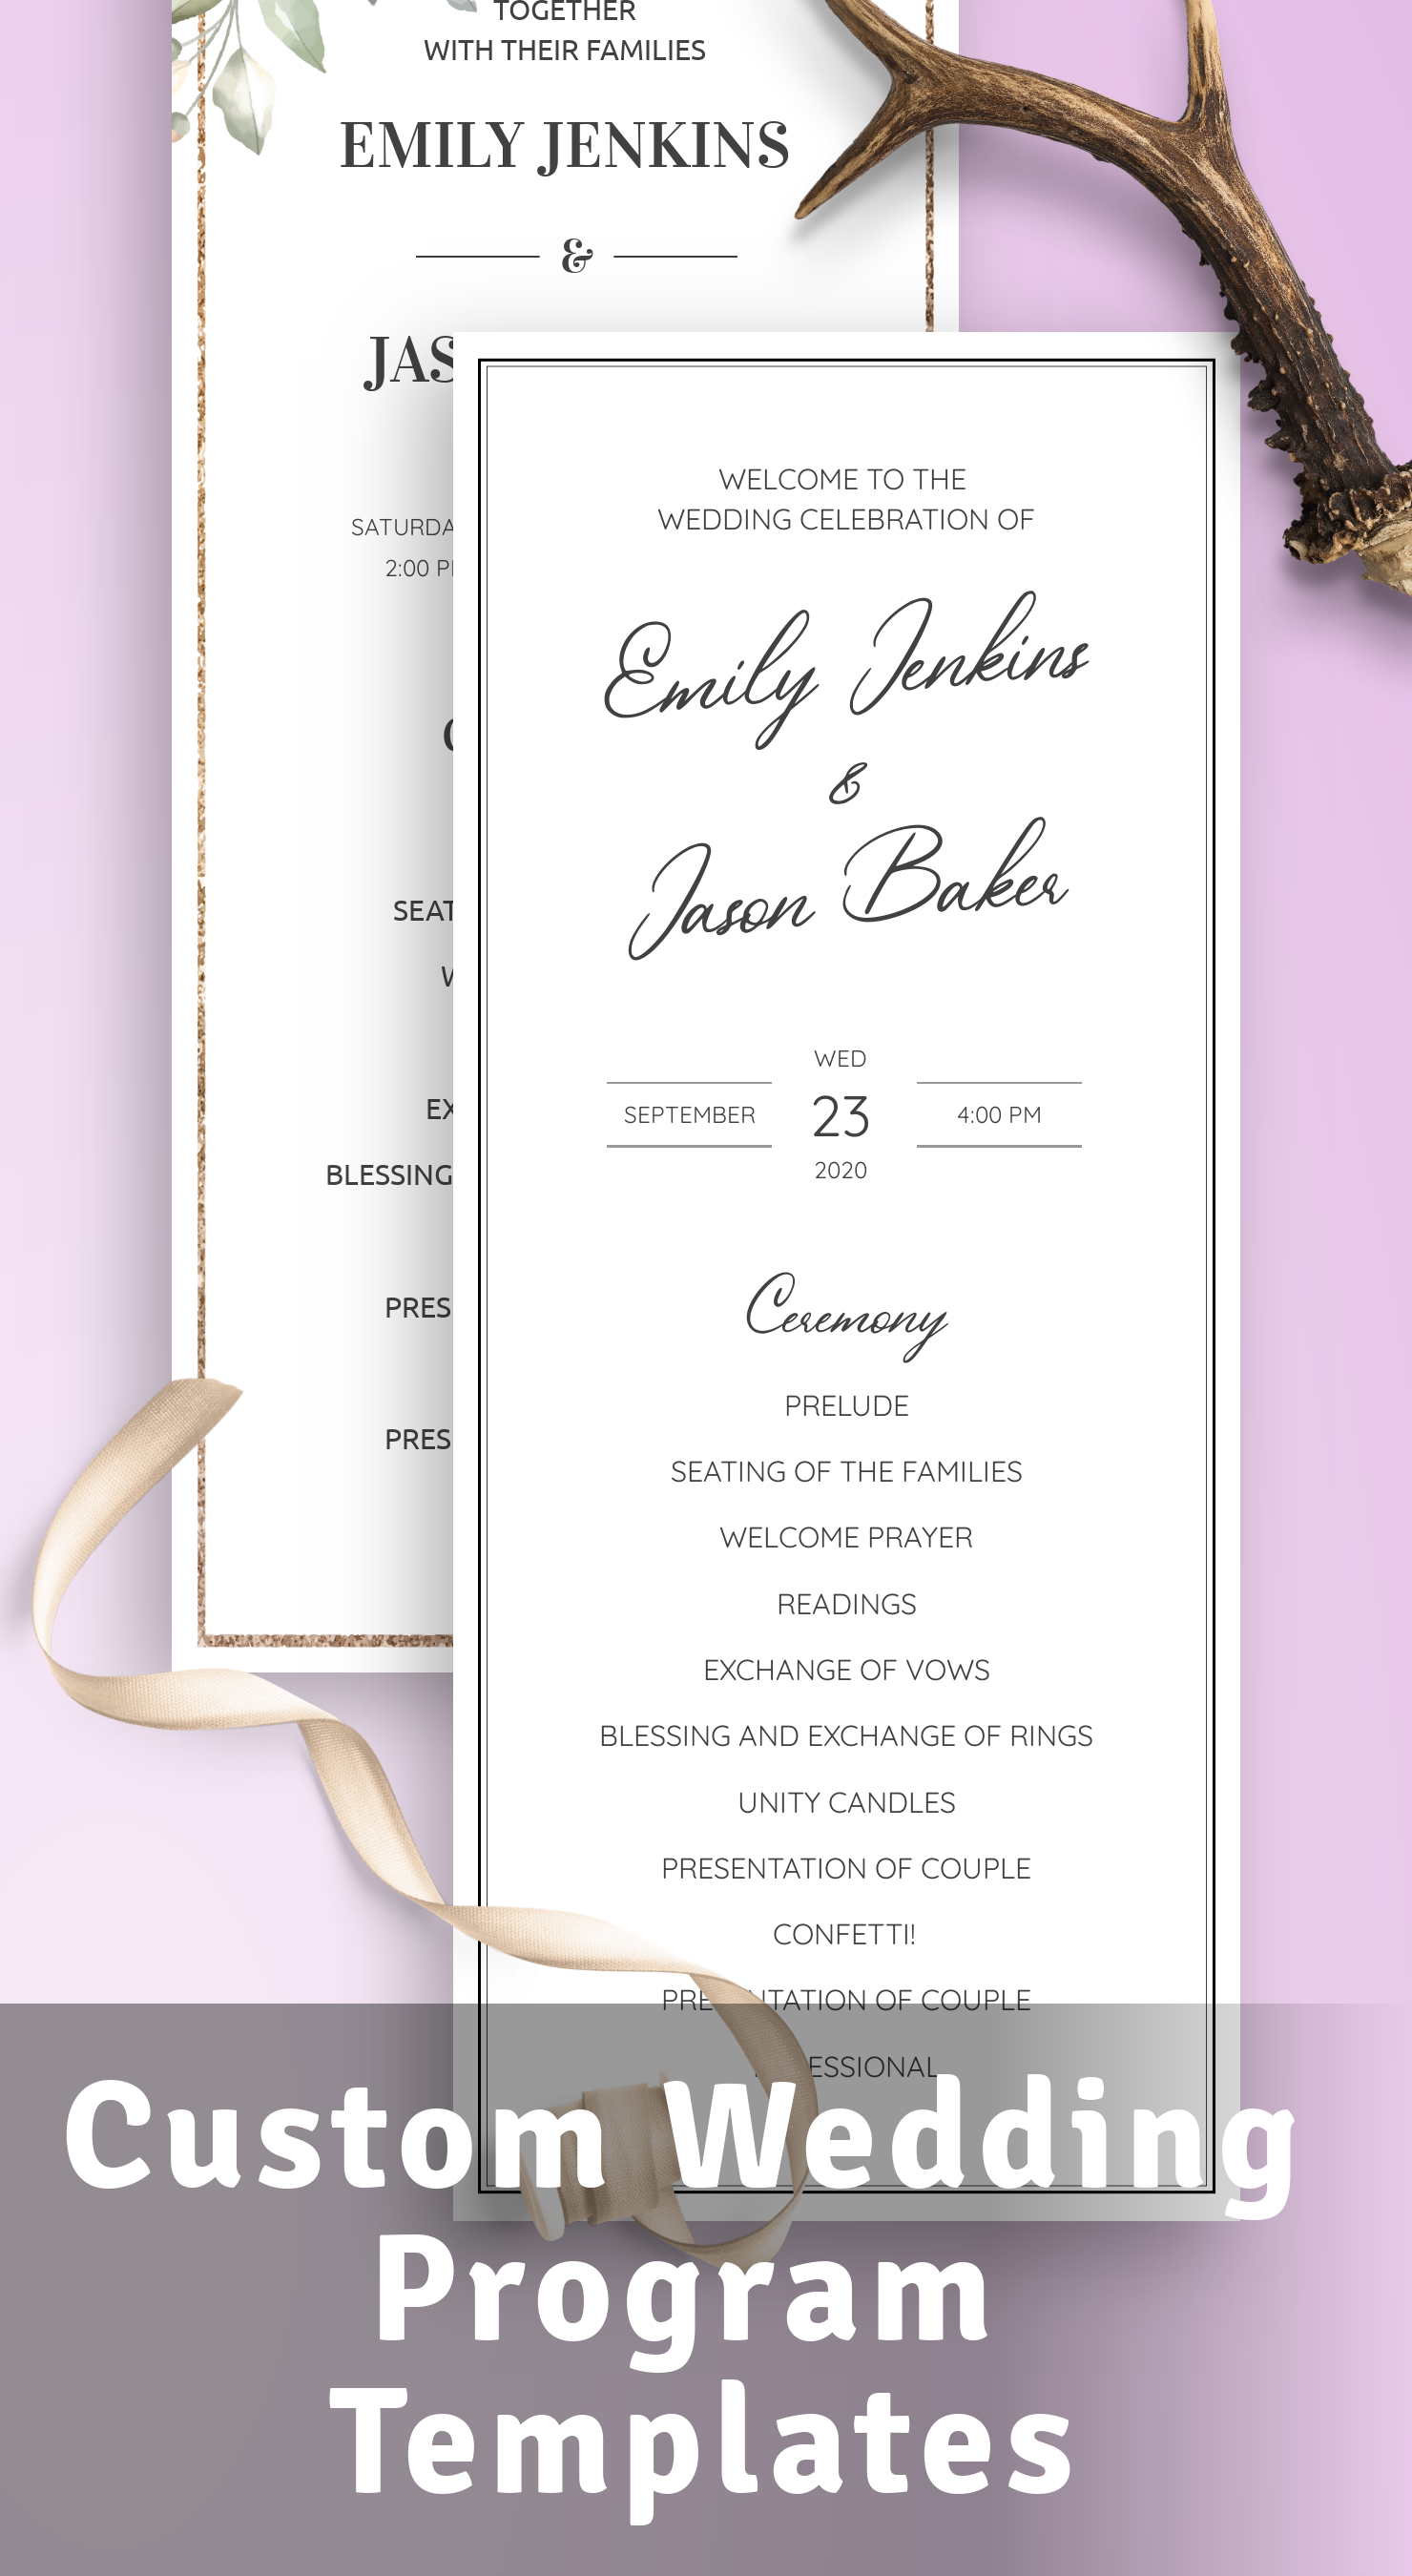 Get Wedding Program Templates